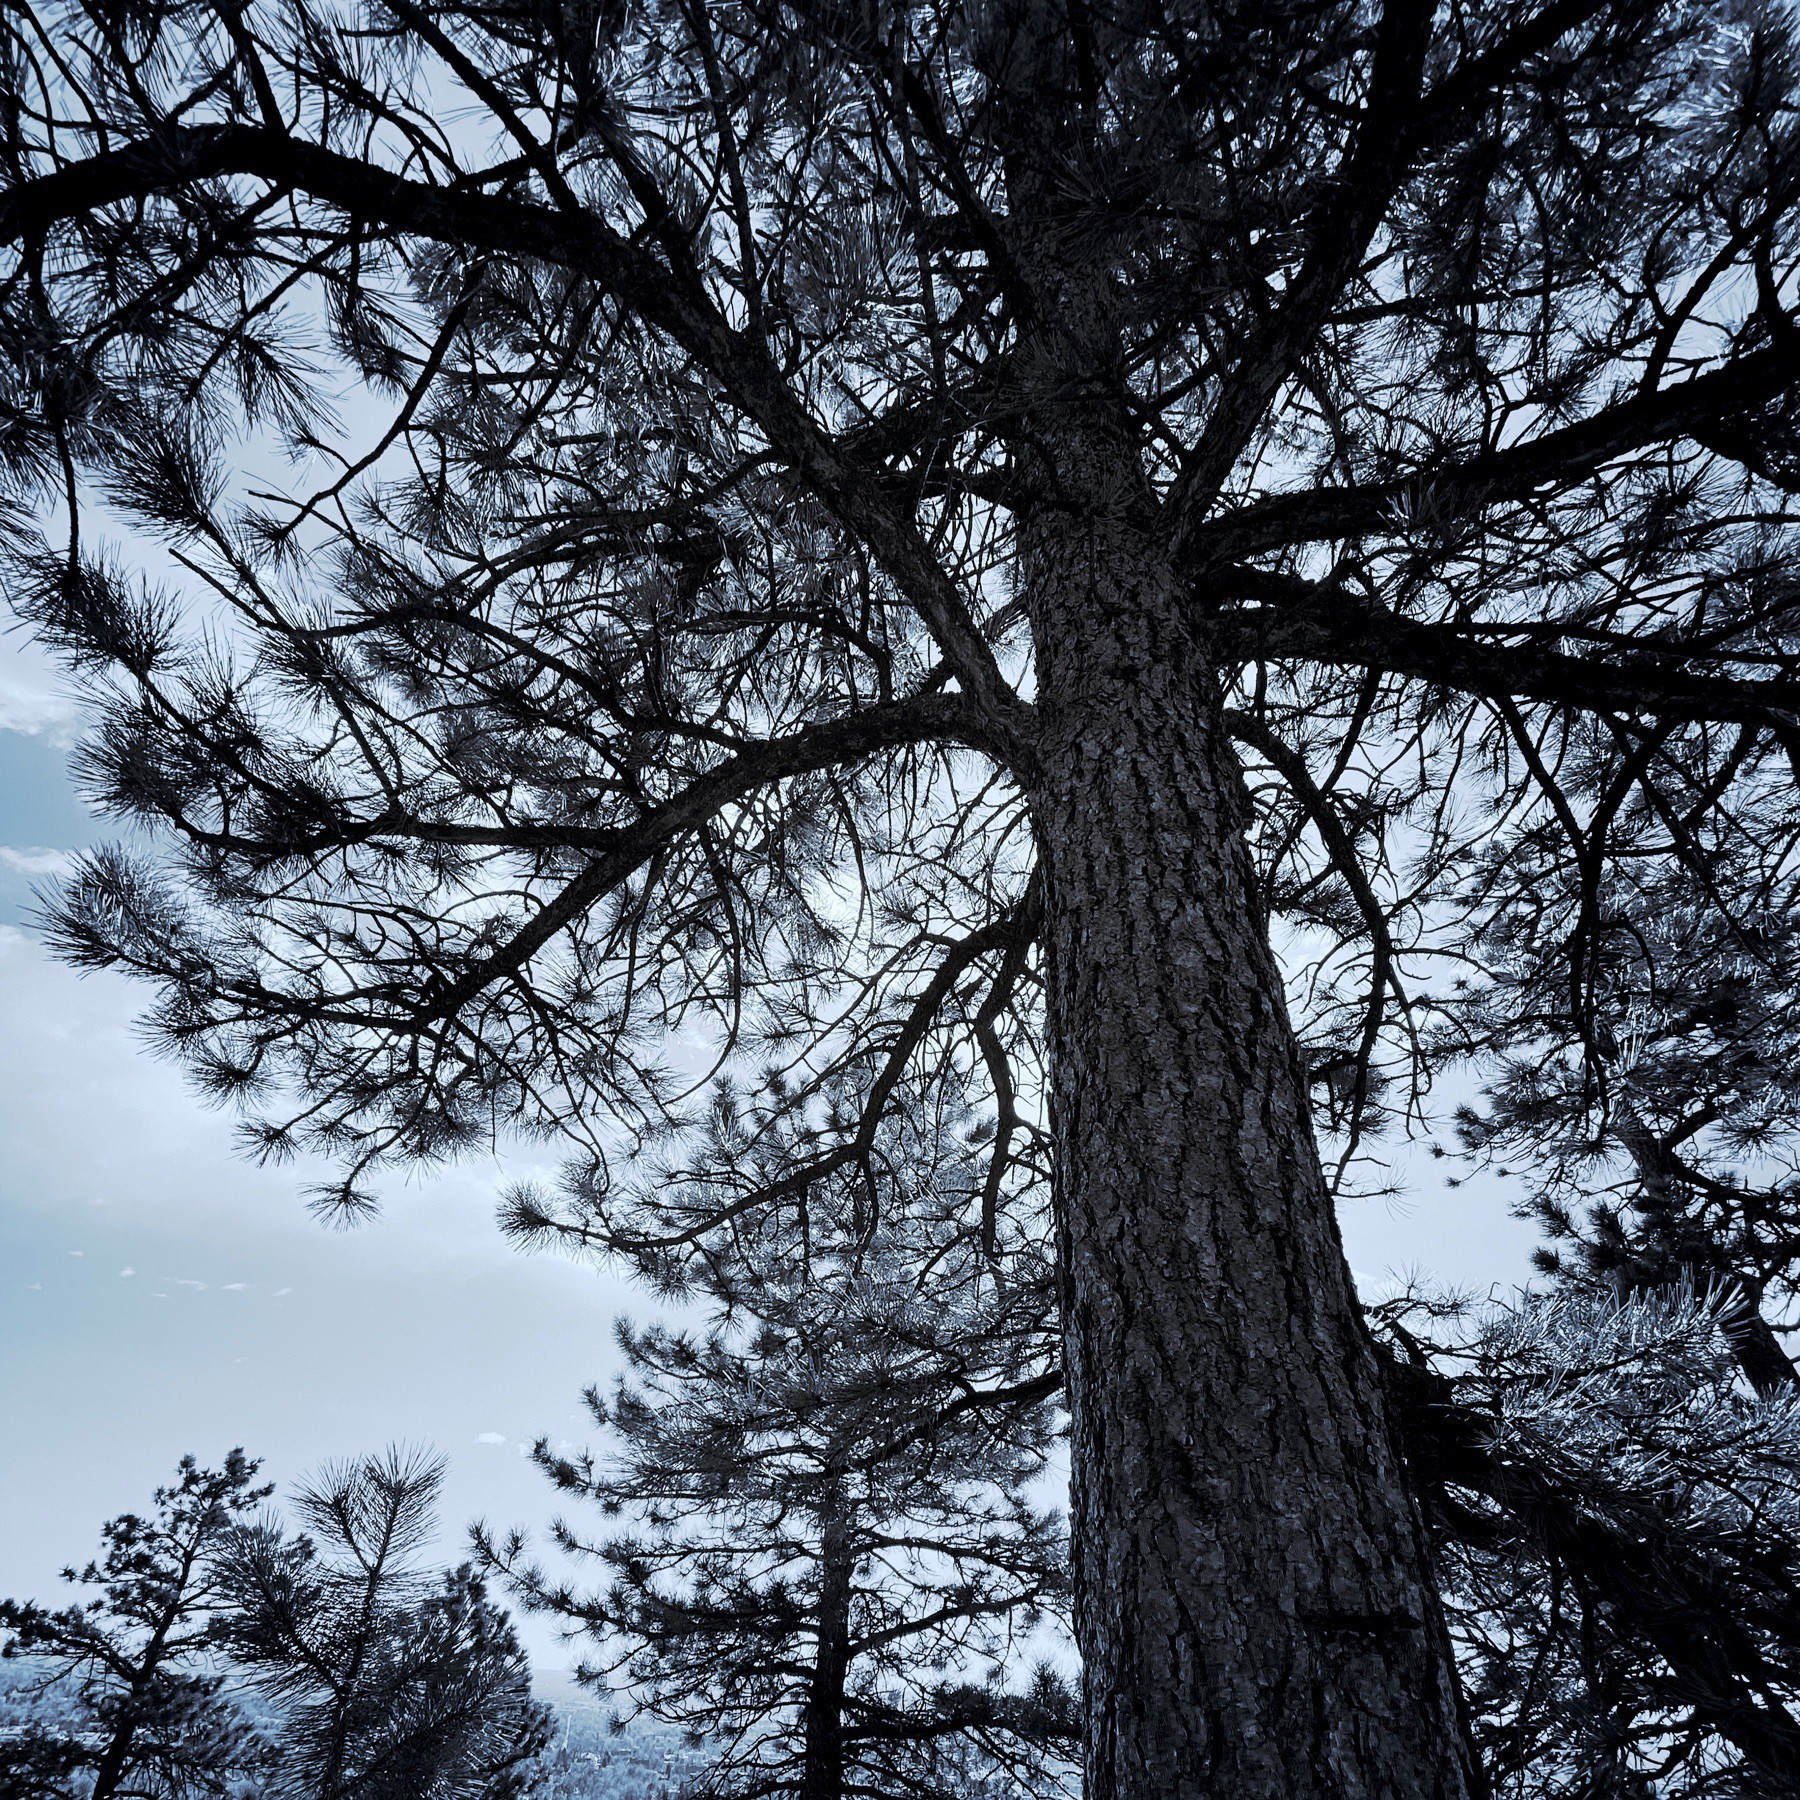 Pine tree, black and white, blue tint